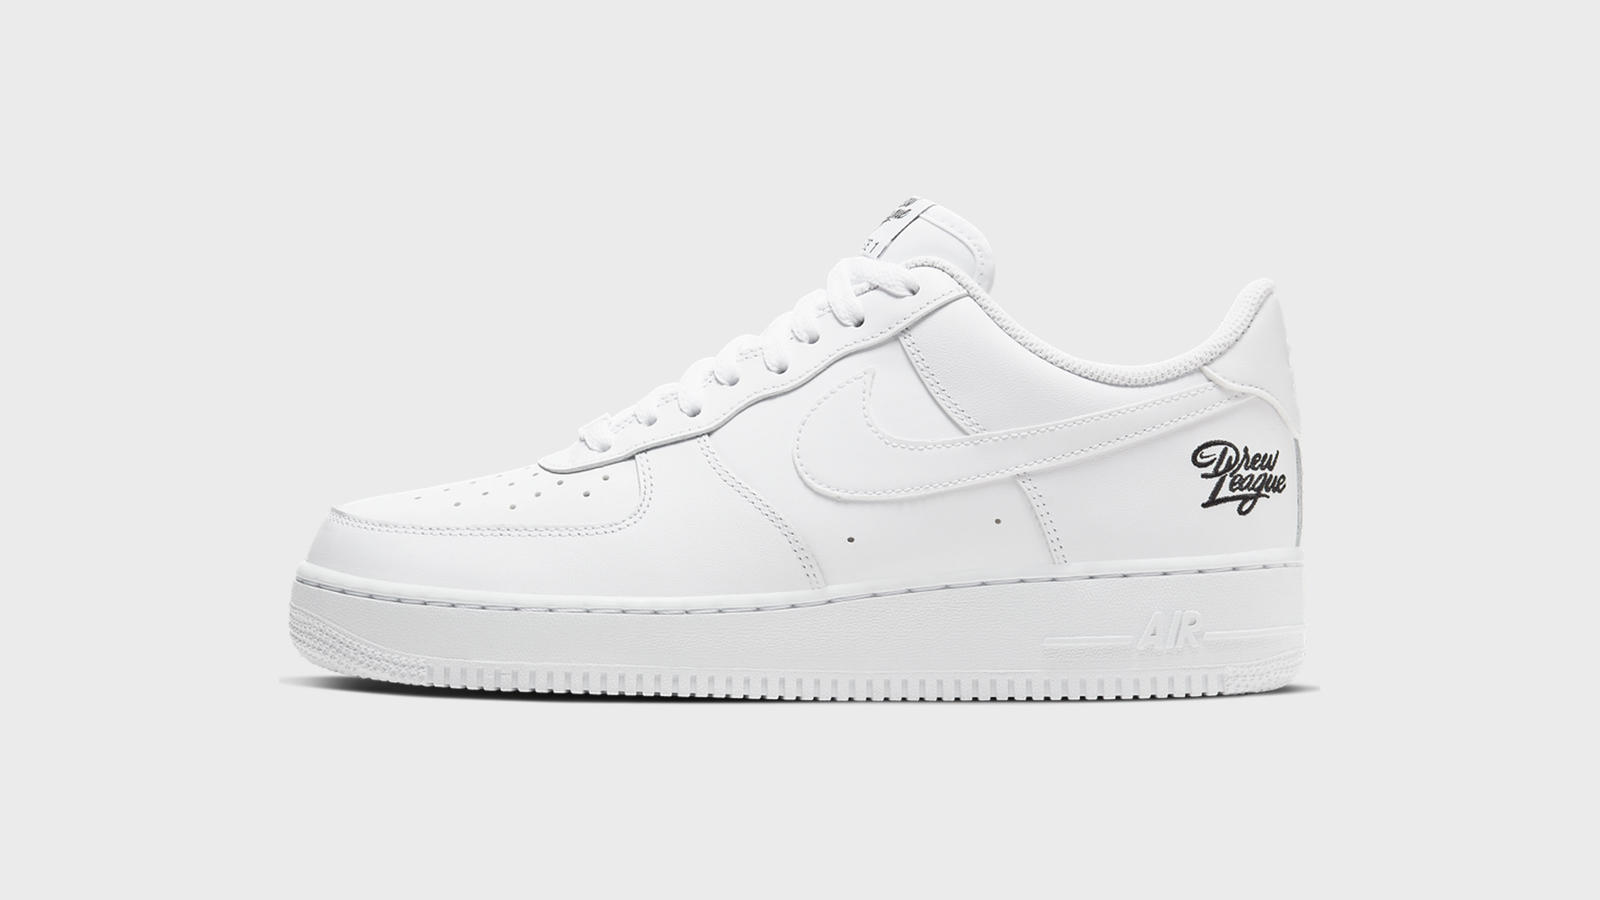 Nike Air Force 1 New York vs New York Los Angeles Drew League Official Images and Release Date 4